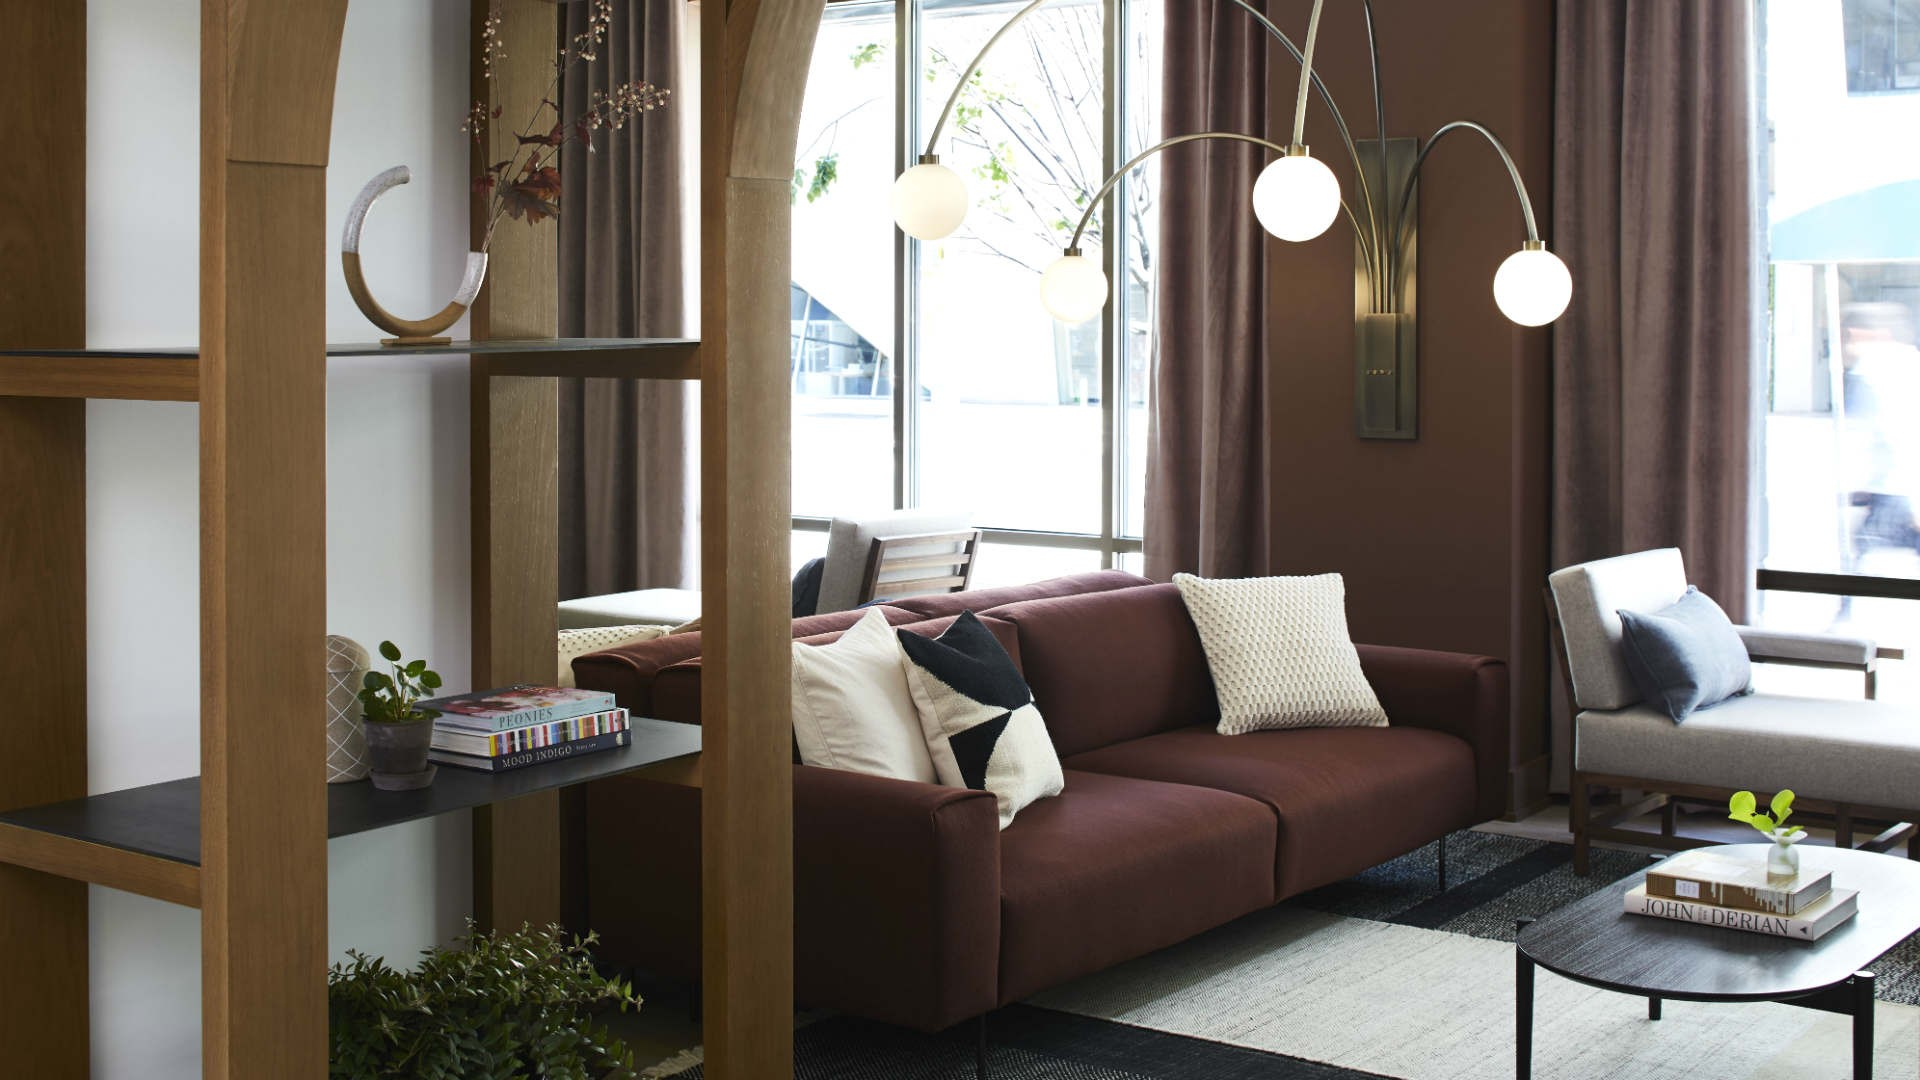 Hotel review: the Kimpton Saint George hotel, Toronto | A couch in the lobby at Kimpton Saint George